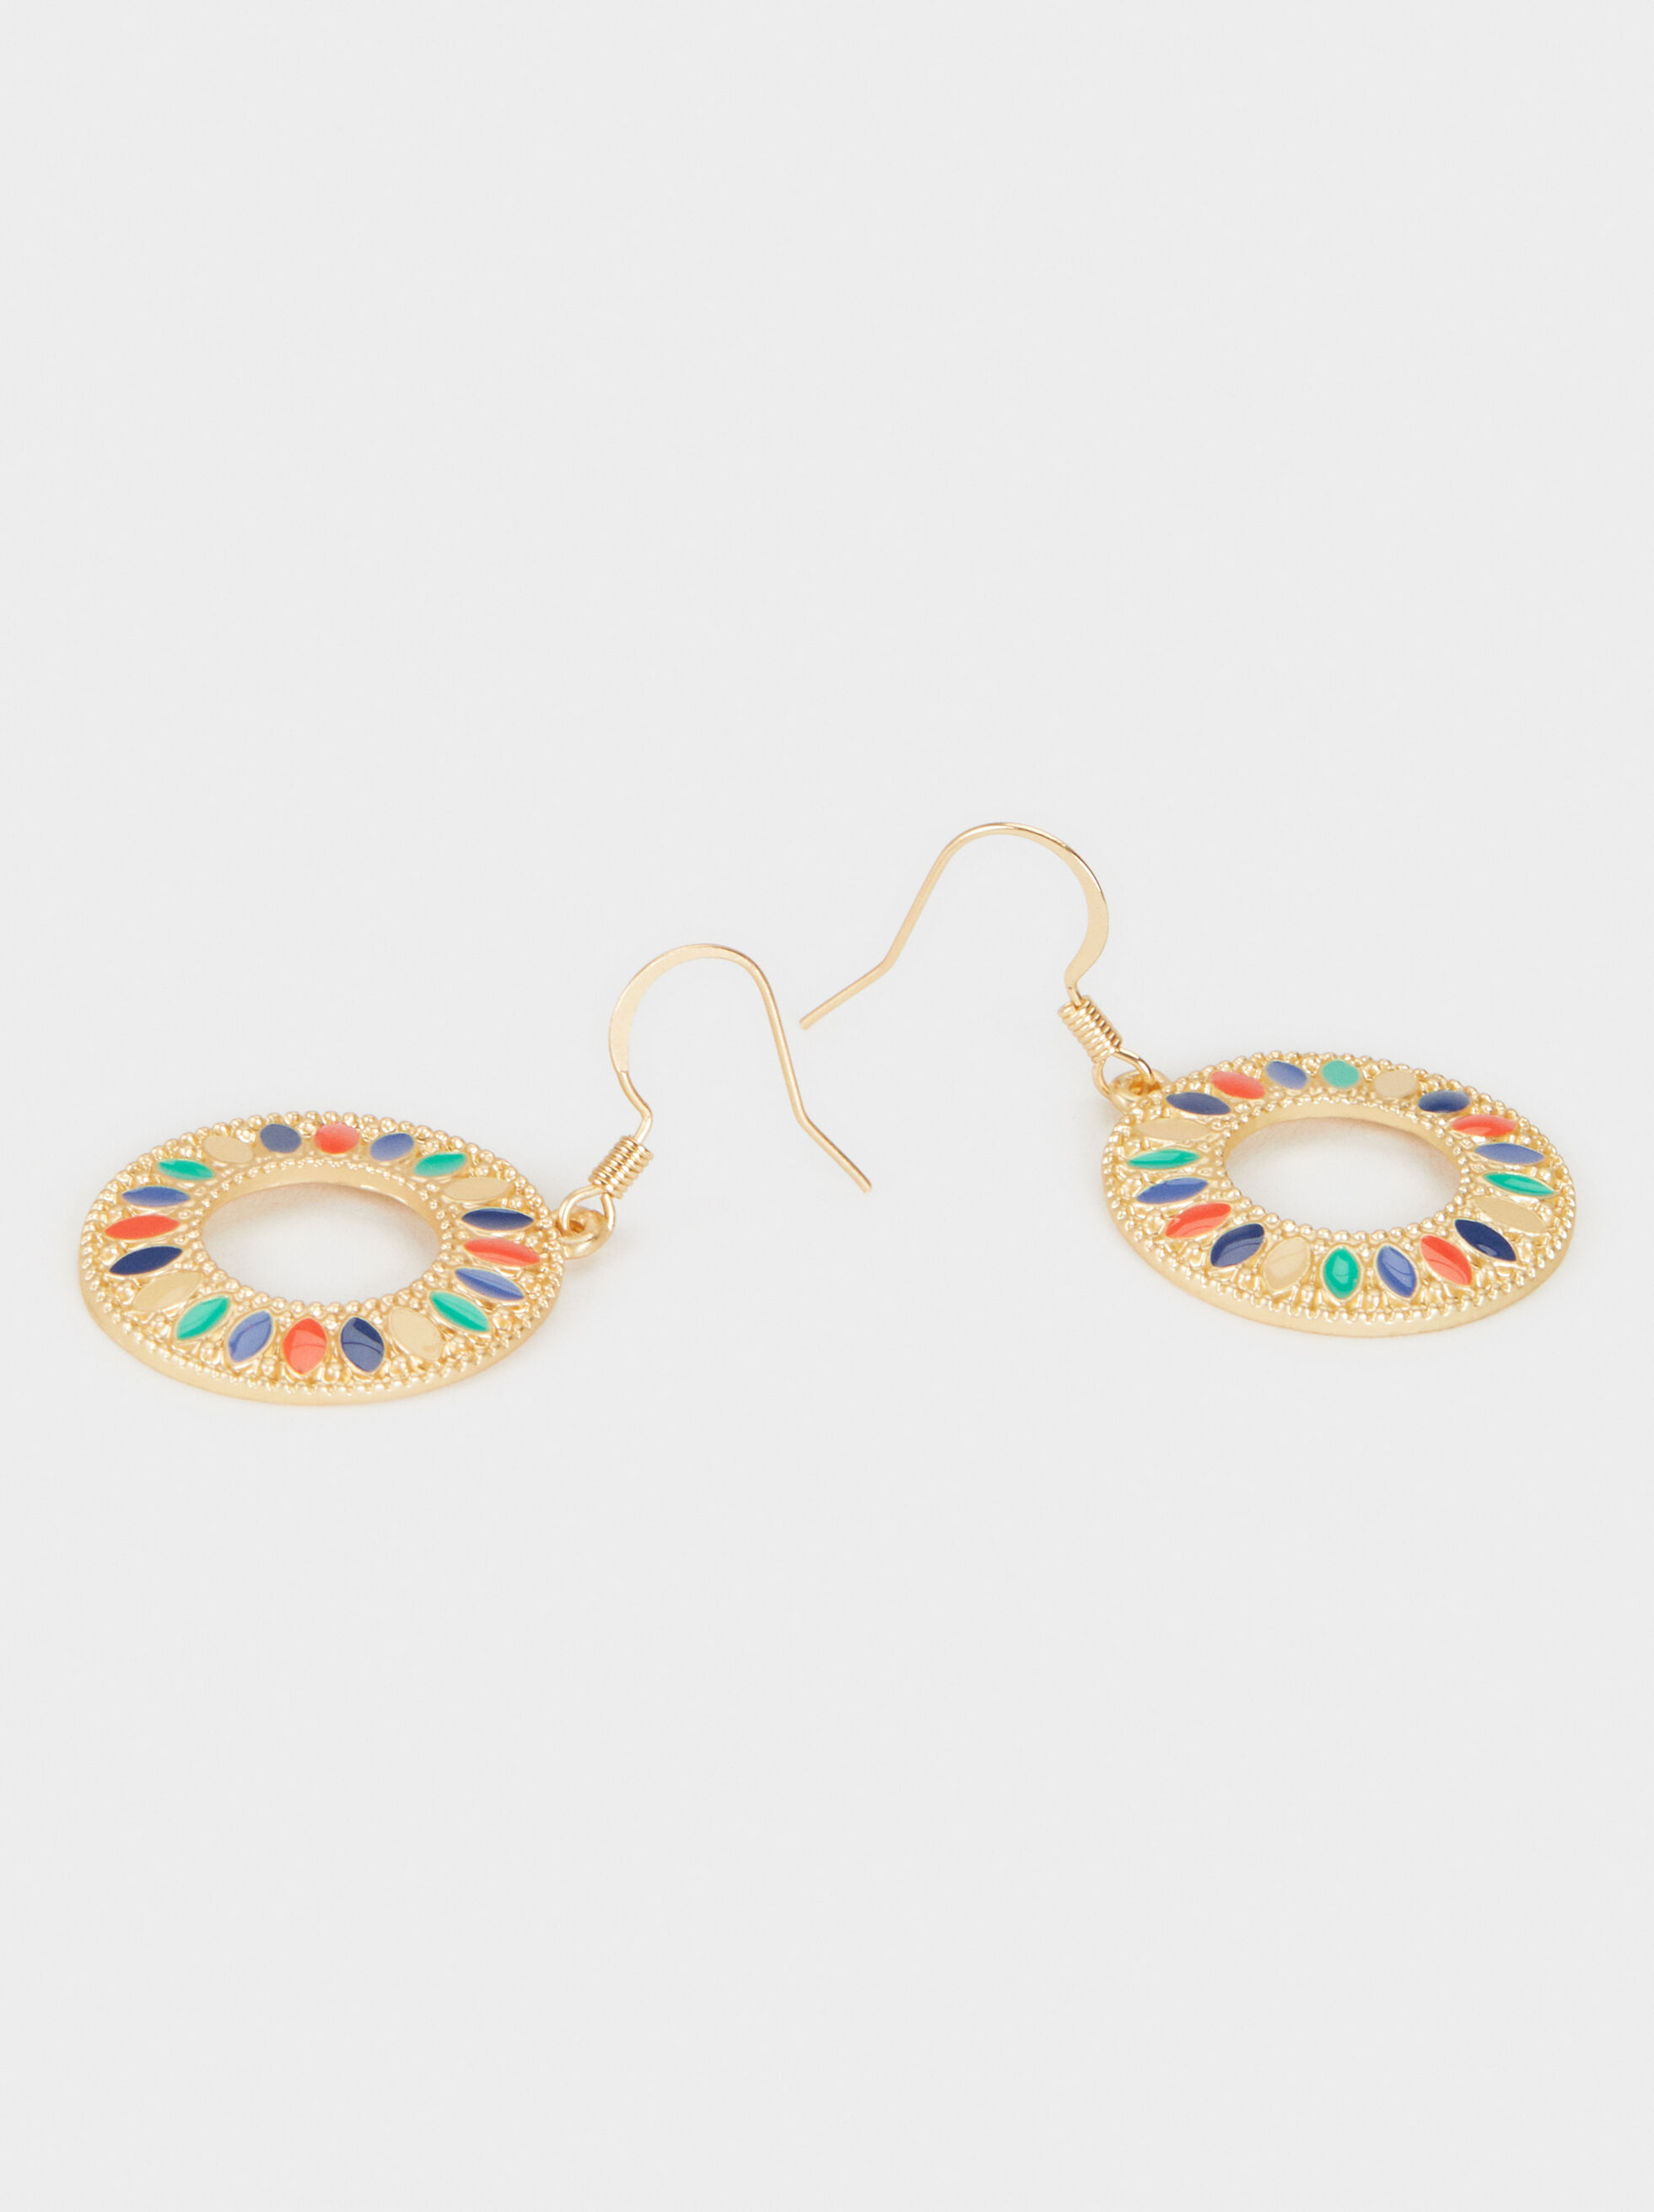 Medium-Sized Zorba Multi-Coloured Earrings, Multicolor, hi-res